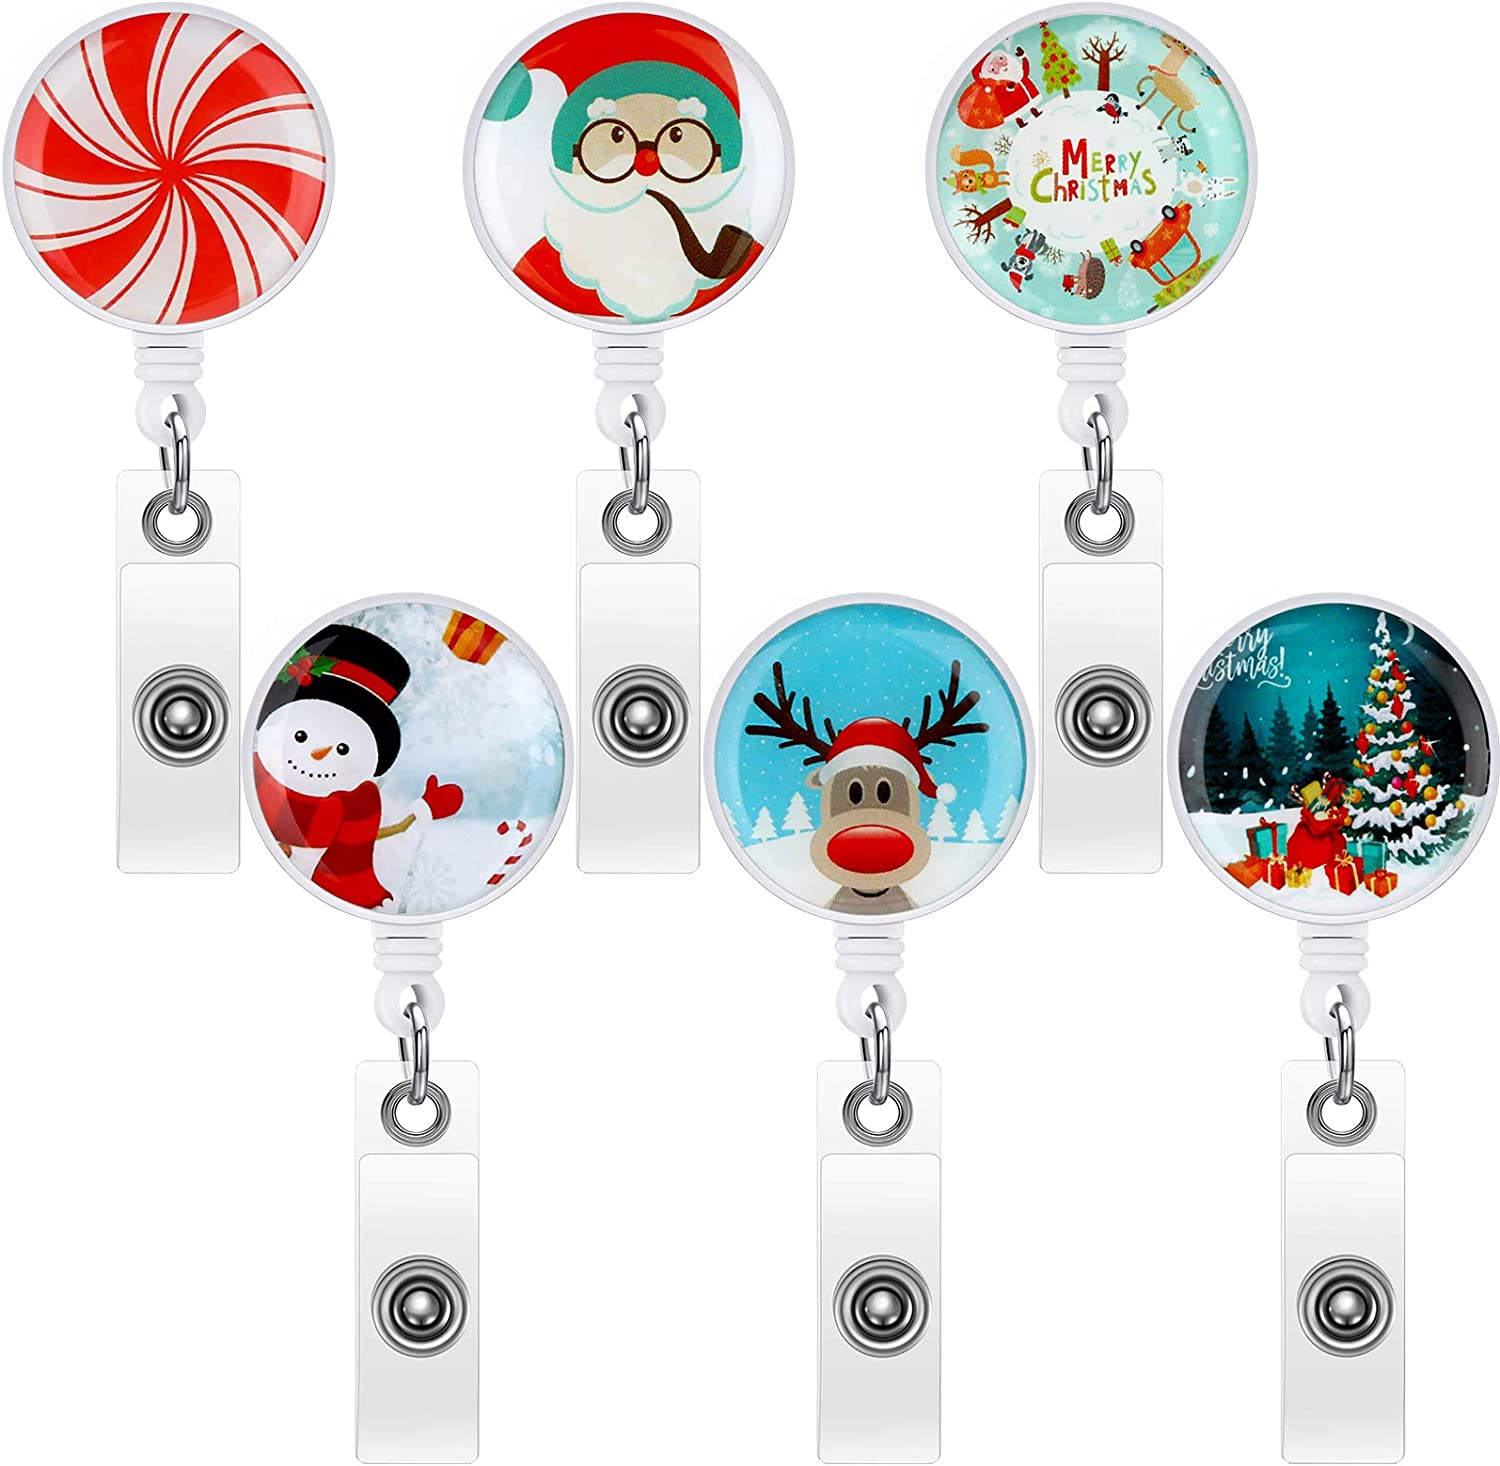 6 Pieces Christmas Badge Reel Retractable Holder Holiday Badge Reel Cute Metal Badge Reels with Alligator Clip ID Card Holder for Office Worker Doctor Nurse